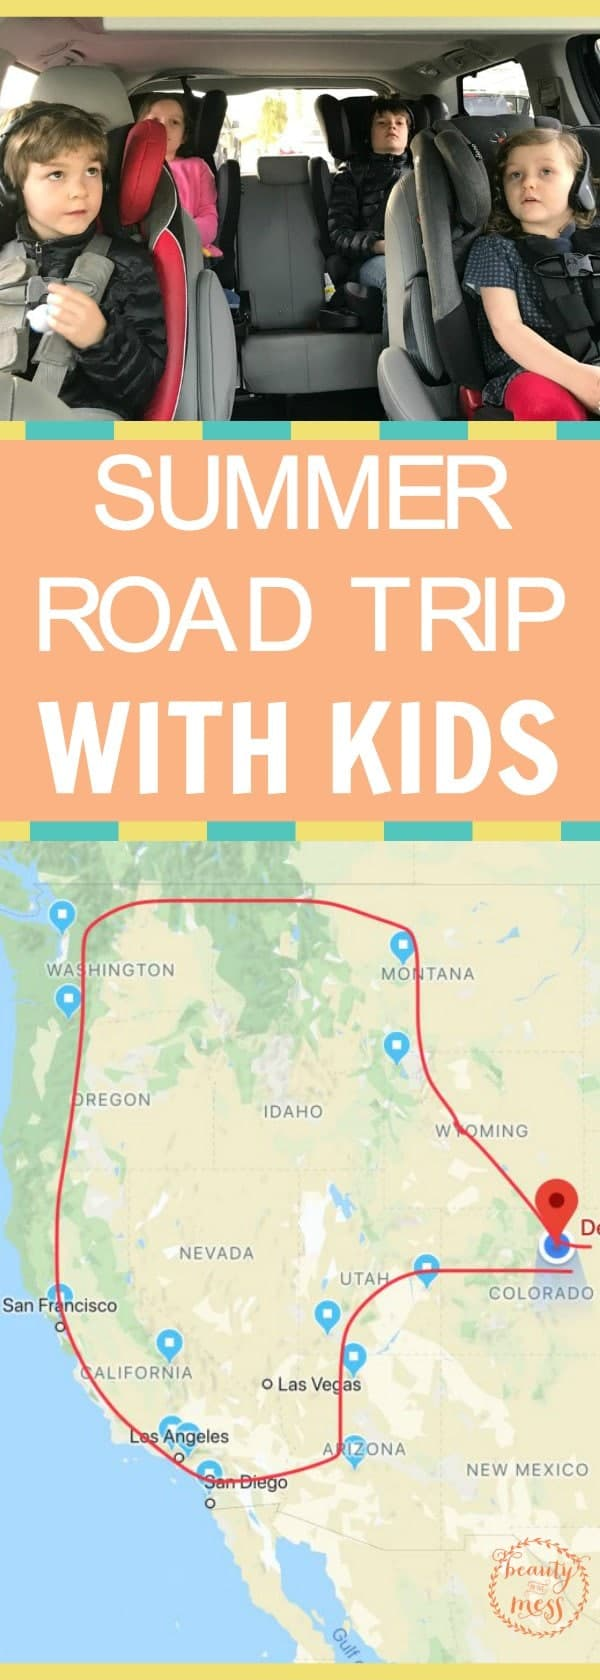 This Summer we are doing something a little crazy. We are taking a month-long West Coast Summer road trip. With four kids. Click to see where we are going. #familytravel #beautyinthemess #summer #roadtrip #westcoast #westcoasttravel via @simplifyingfamily